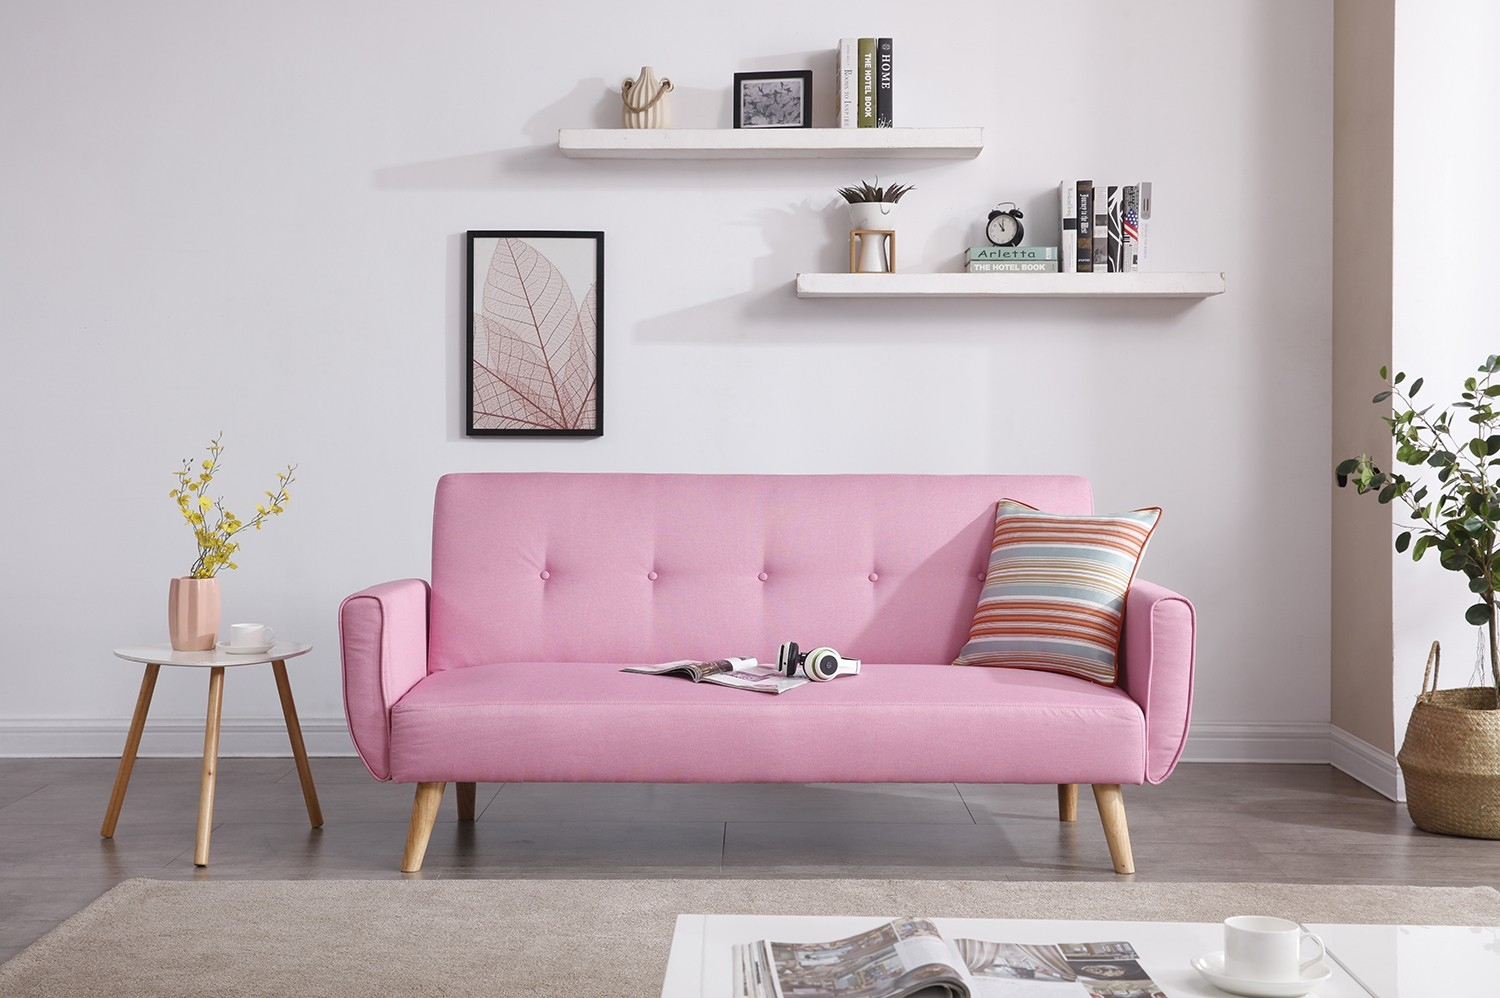 Berlin Rose tout Canape Angle Scandinave Convertible